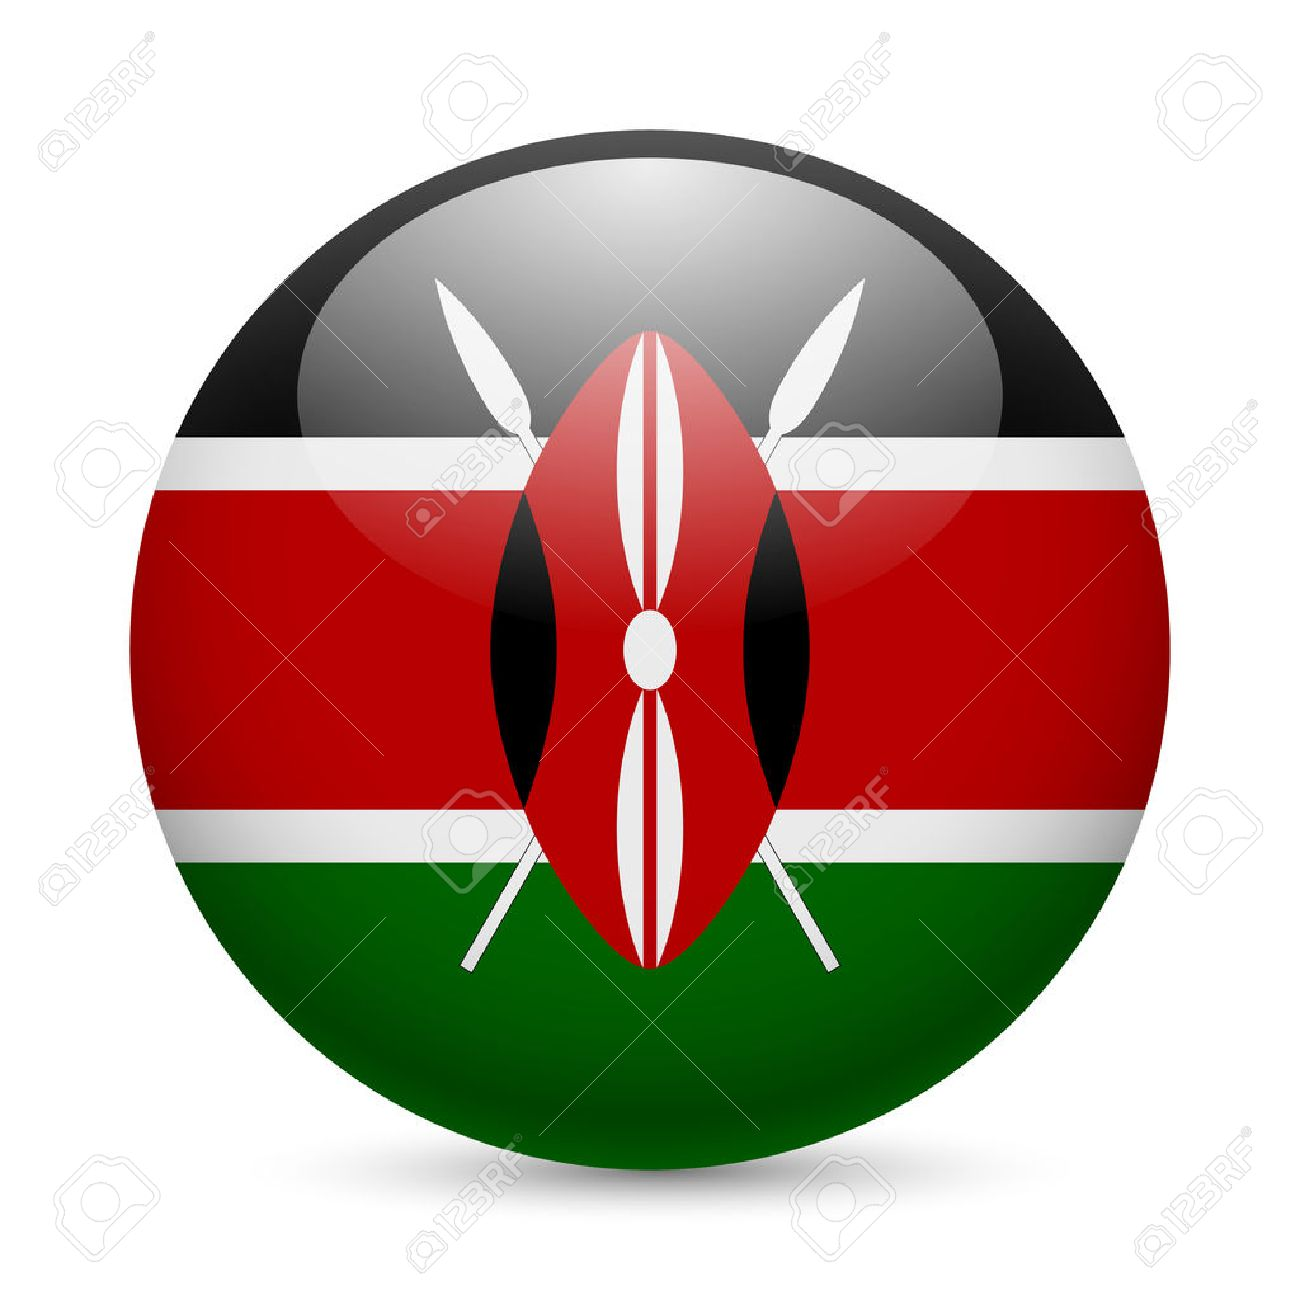 Image result for kenyan flag in sircare